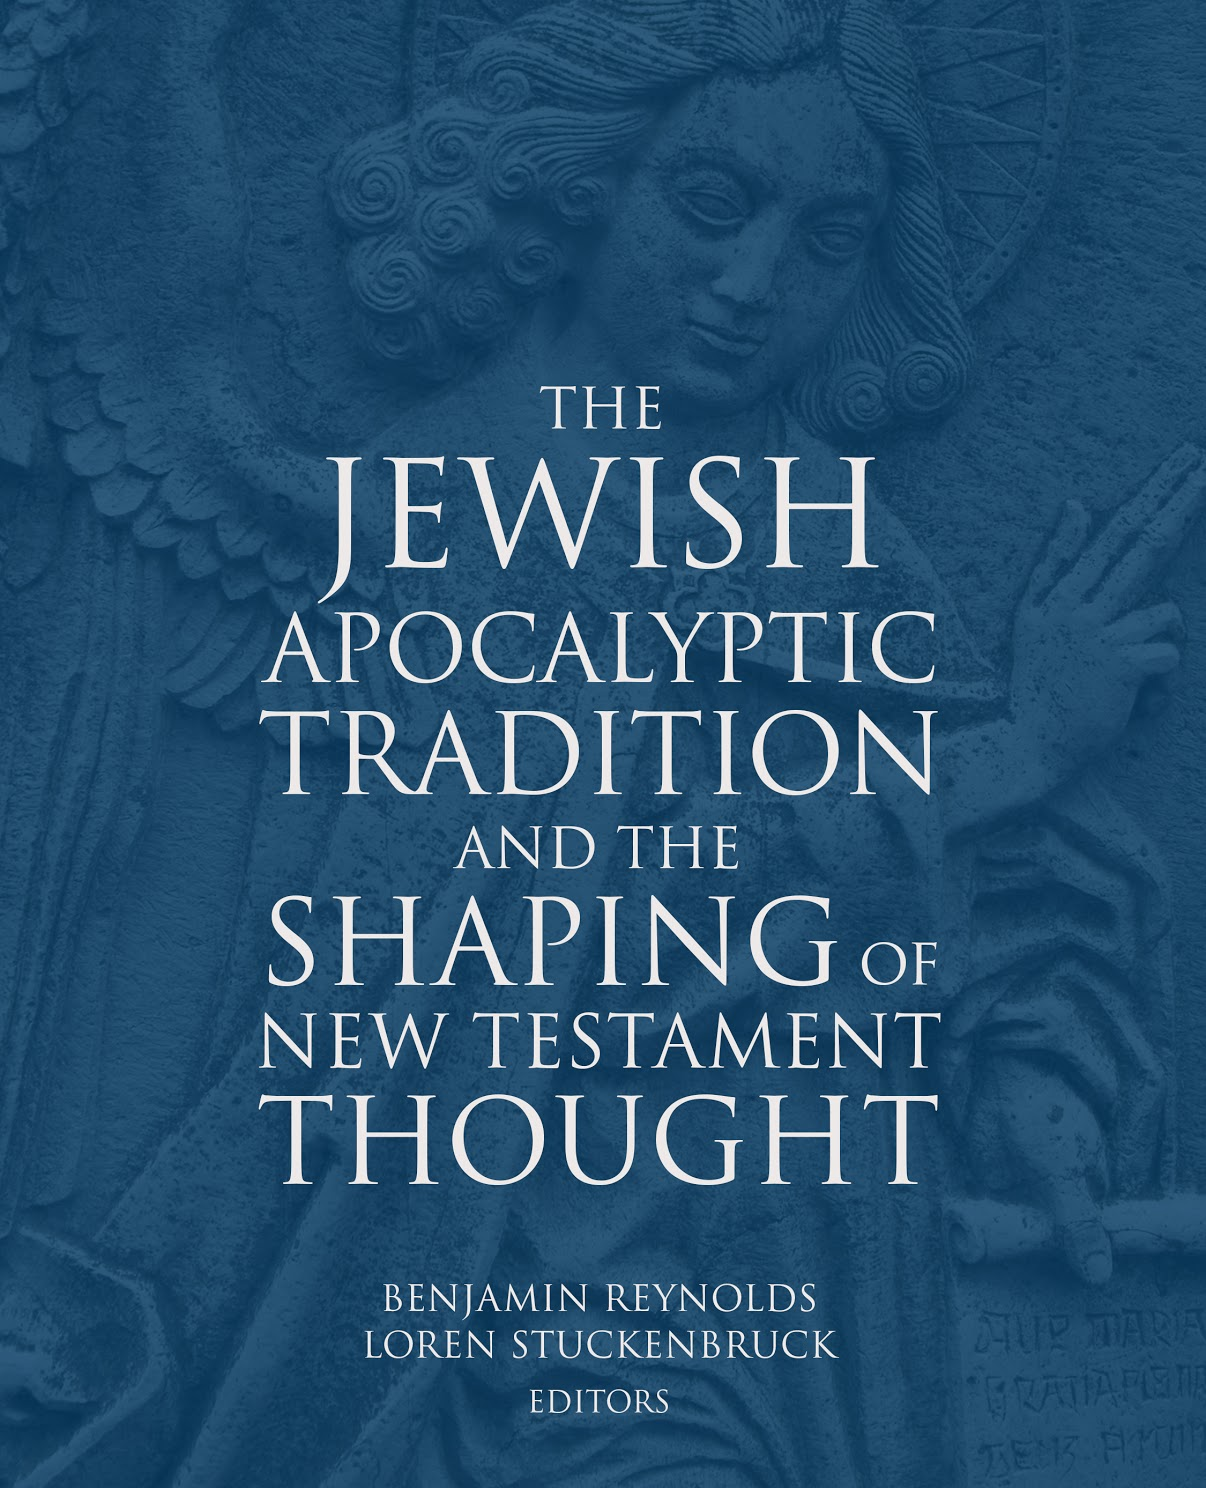 REYNOLDS, B. E. ; STUCKENBRUCK, L. T.  (eds.) The Jewish Apocalyptic Tradition and the Shaping of New Testament Thought. Minneapolis: Fortress Press, 2017, 300 p.